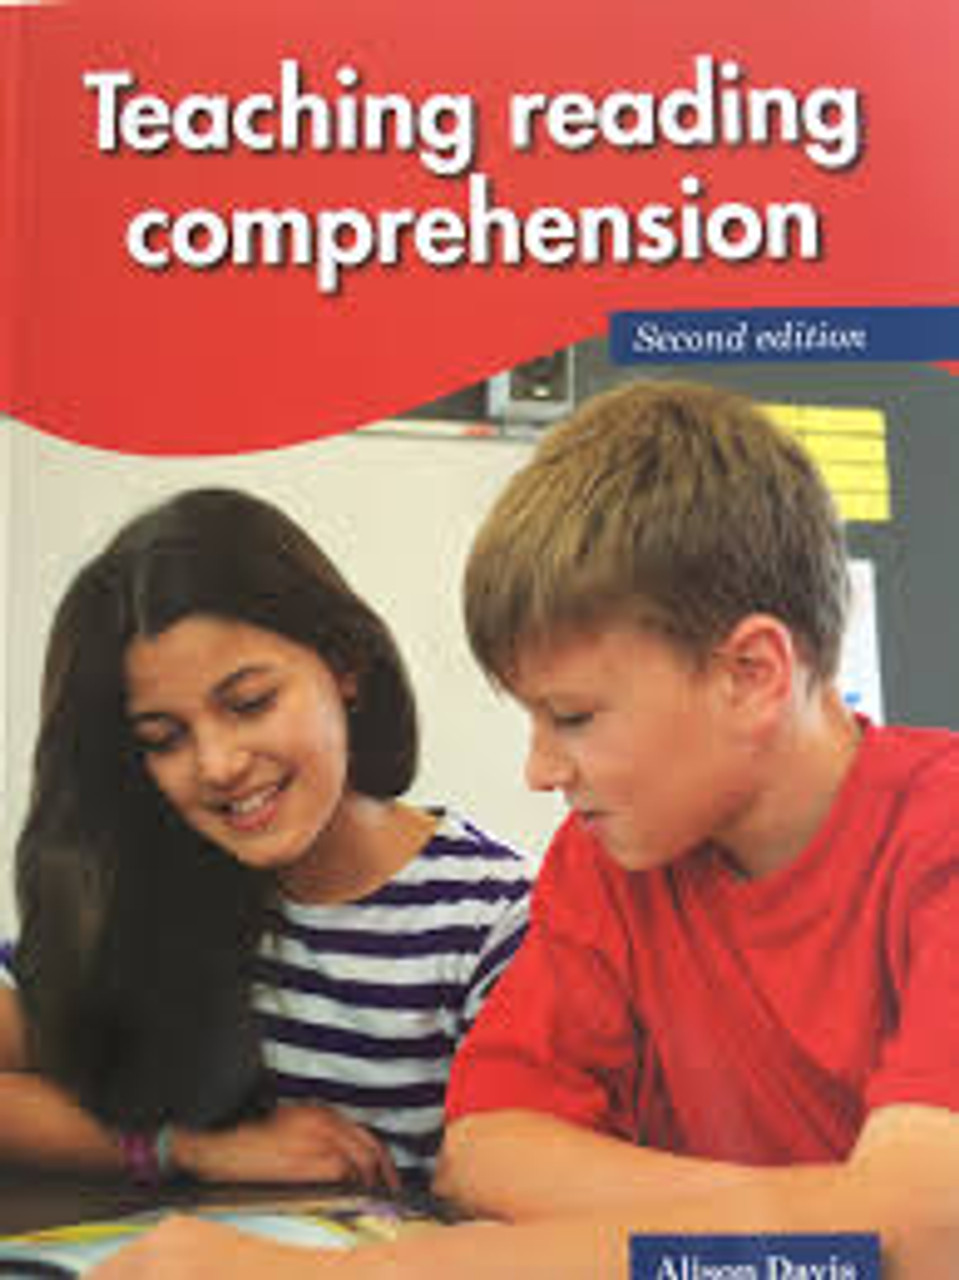 Teaching reading comprehension (Second Edition)